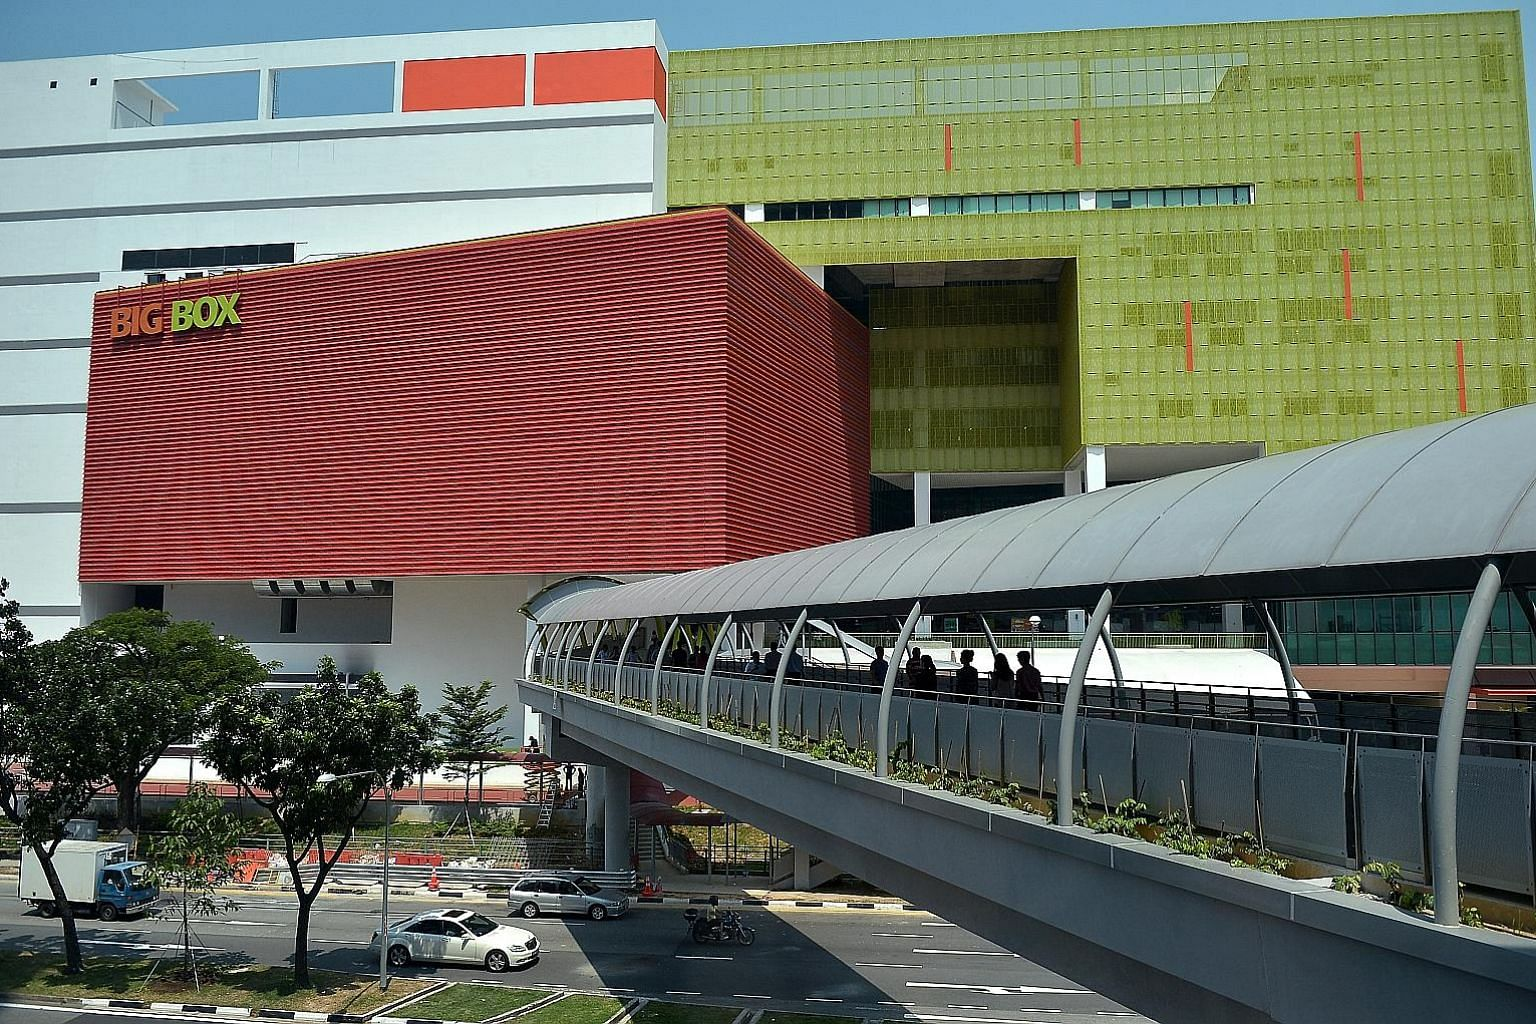 Big Box, an eight-storey warehouse retail mall in Jurong East Regional Centre, is owned by Big Box Pte Ltd, a 51 per cent subsidiary of mainboard-listed consumer electronics retailer TT International. The property has a balance of 19 years on its 30-